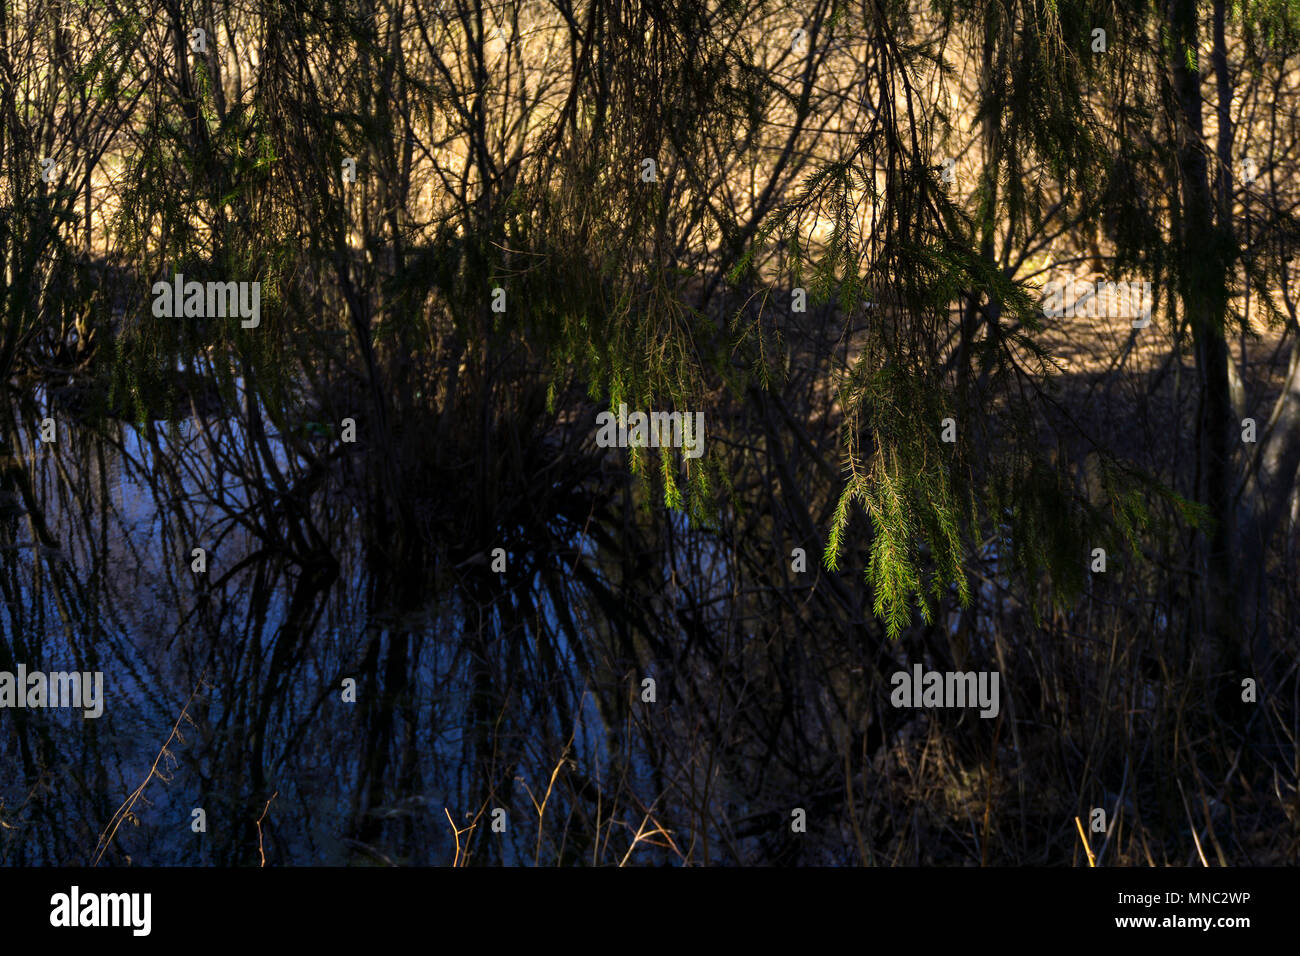 secluded oxbow lake in the spring river valley, covered with willow bushes and spruces, focus on sunlit spruce branches - Stock Image